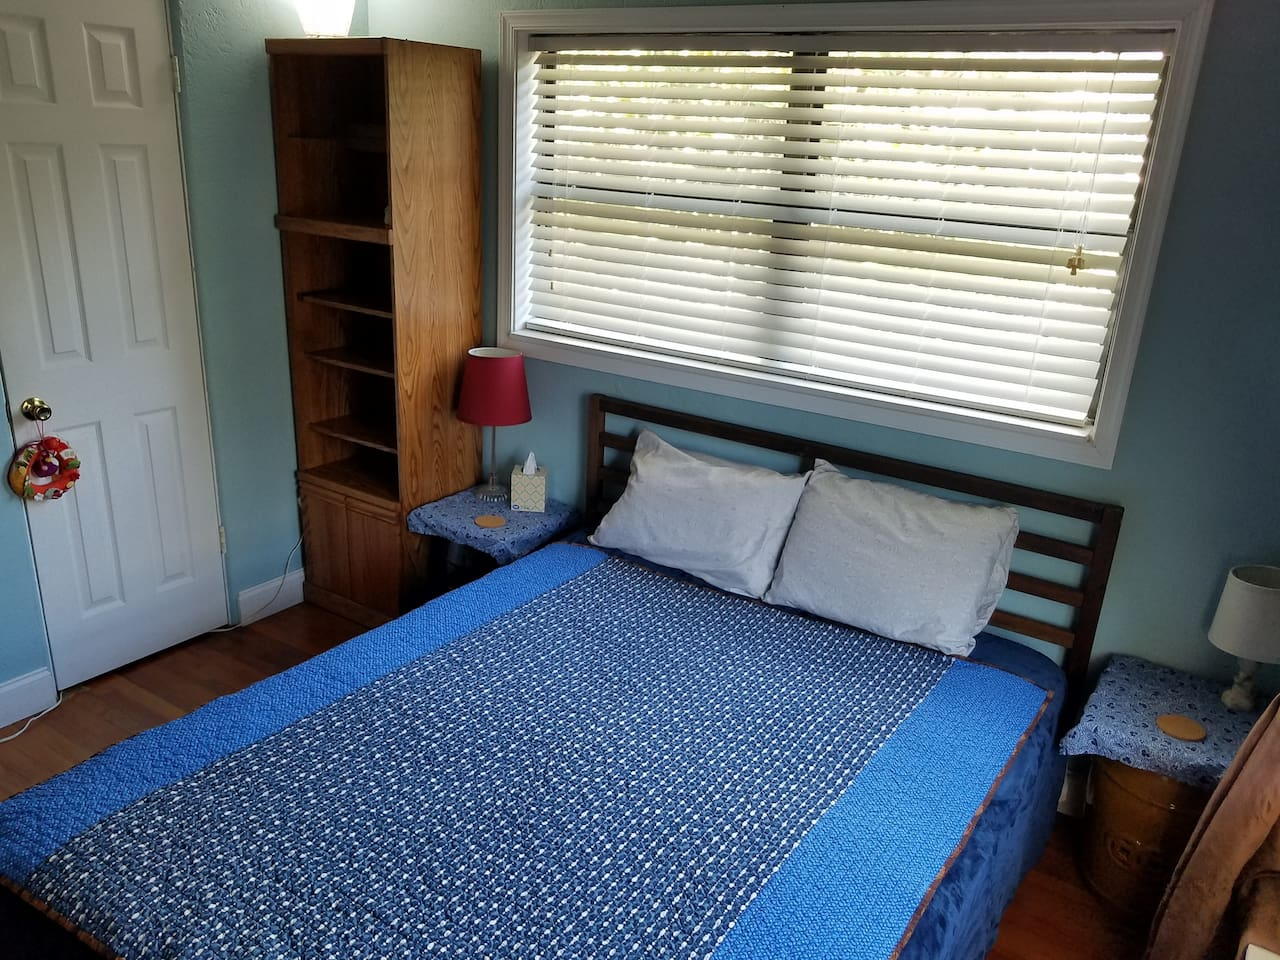 Comfortable queen size bed with extra pillows and blankets available, stored in the closet in the room for your convenience.